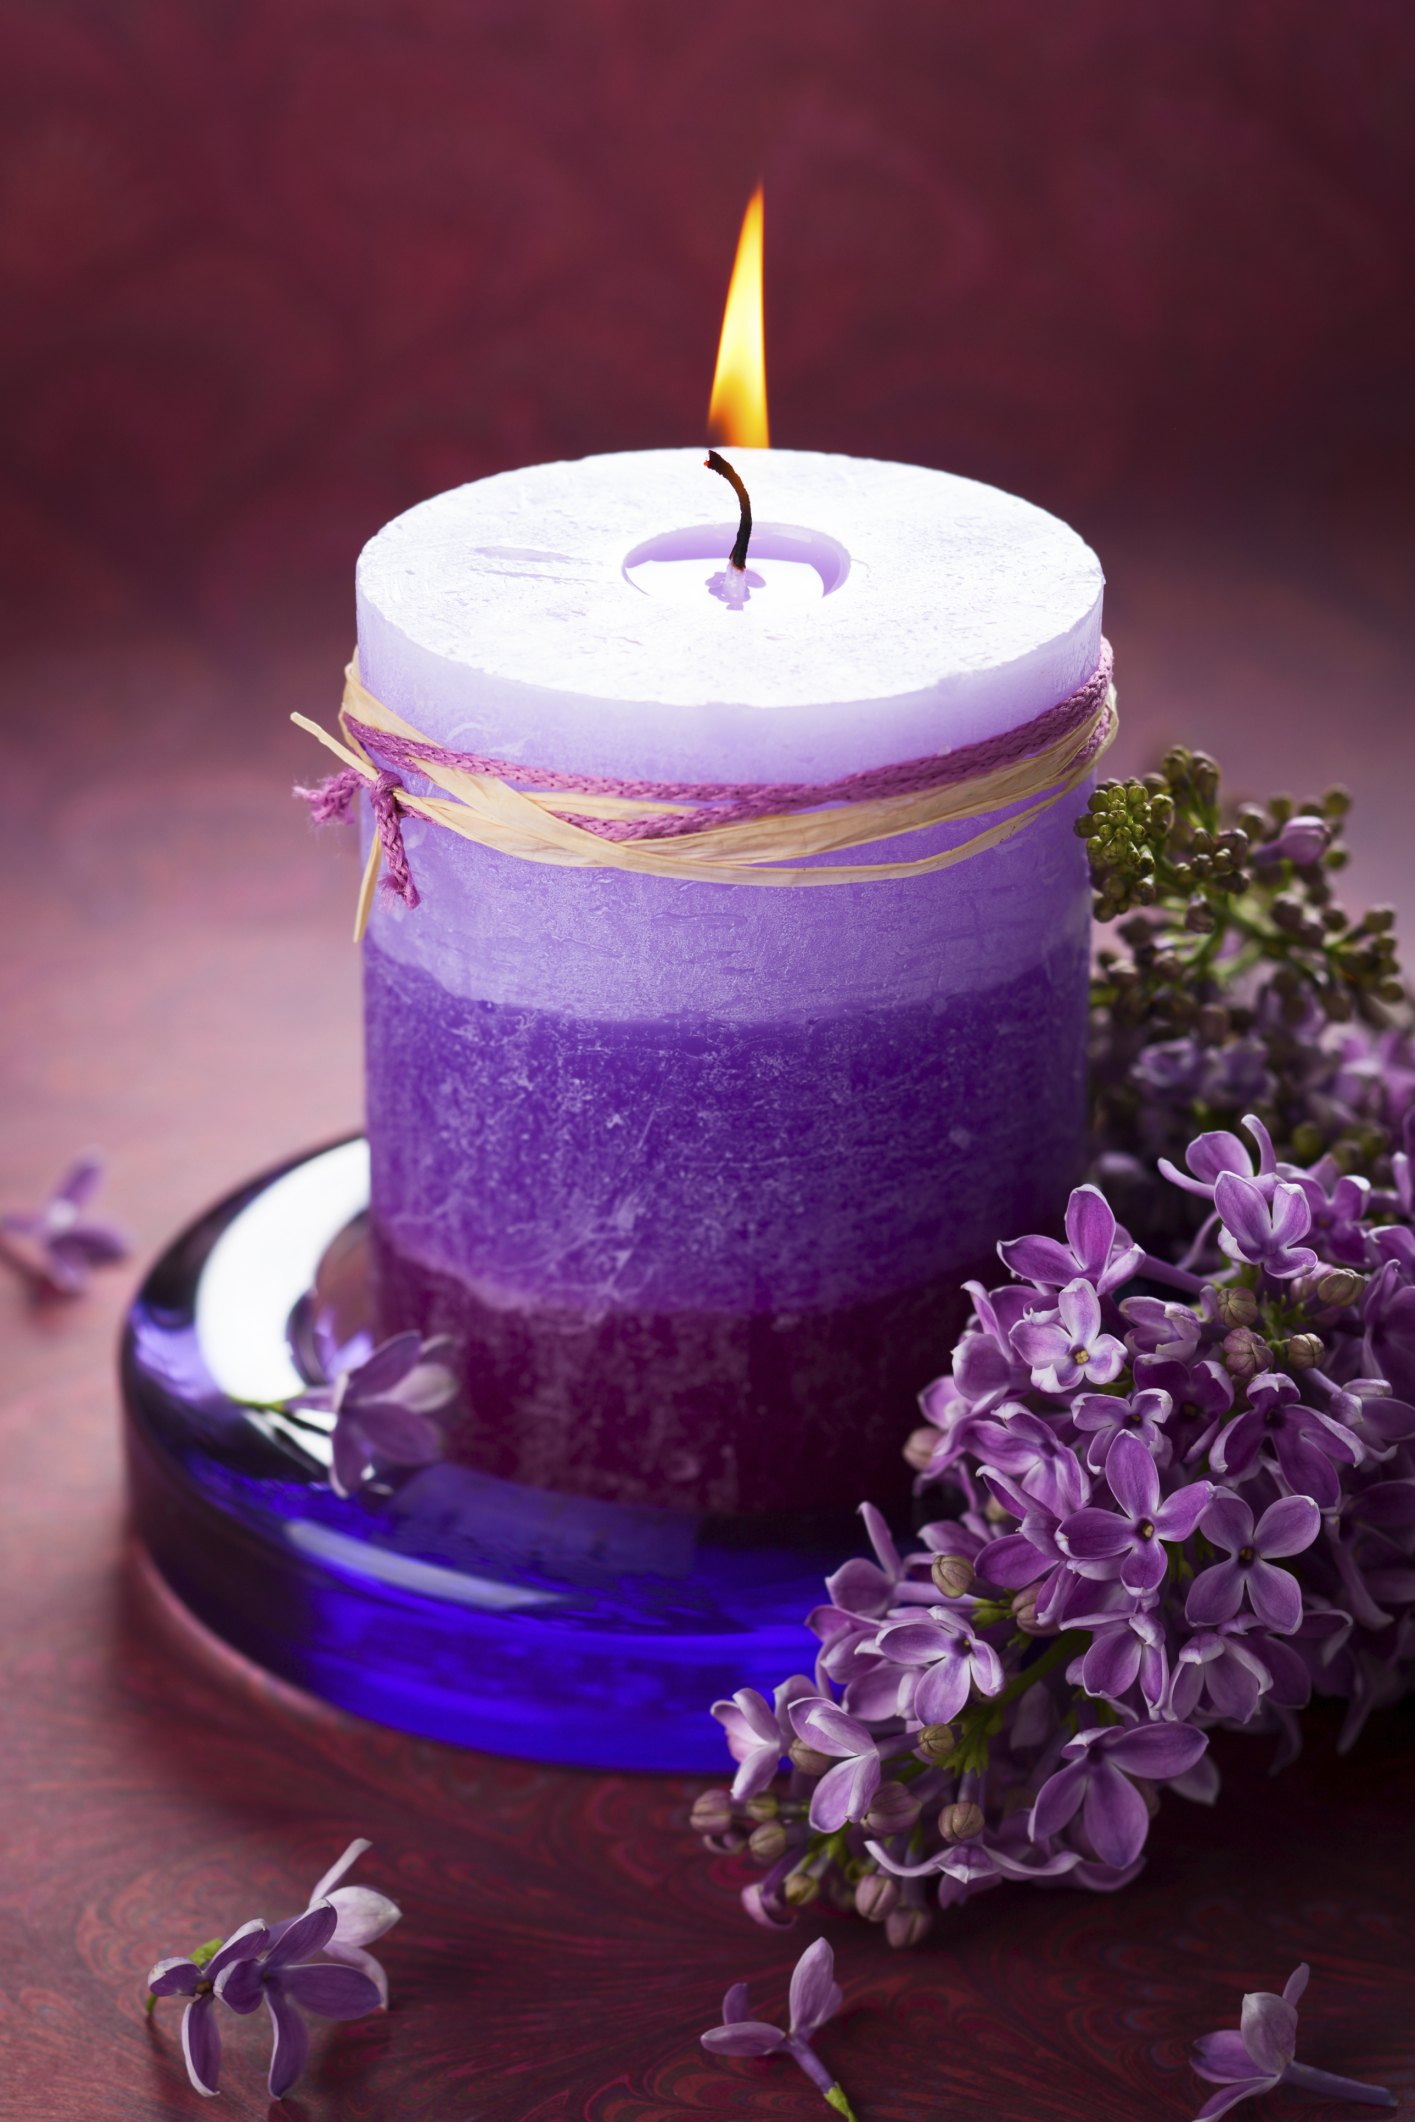 Homemade candle scents using food ehow for Scents for homemade candles